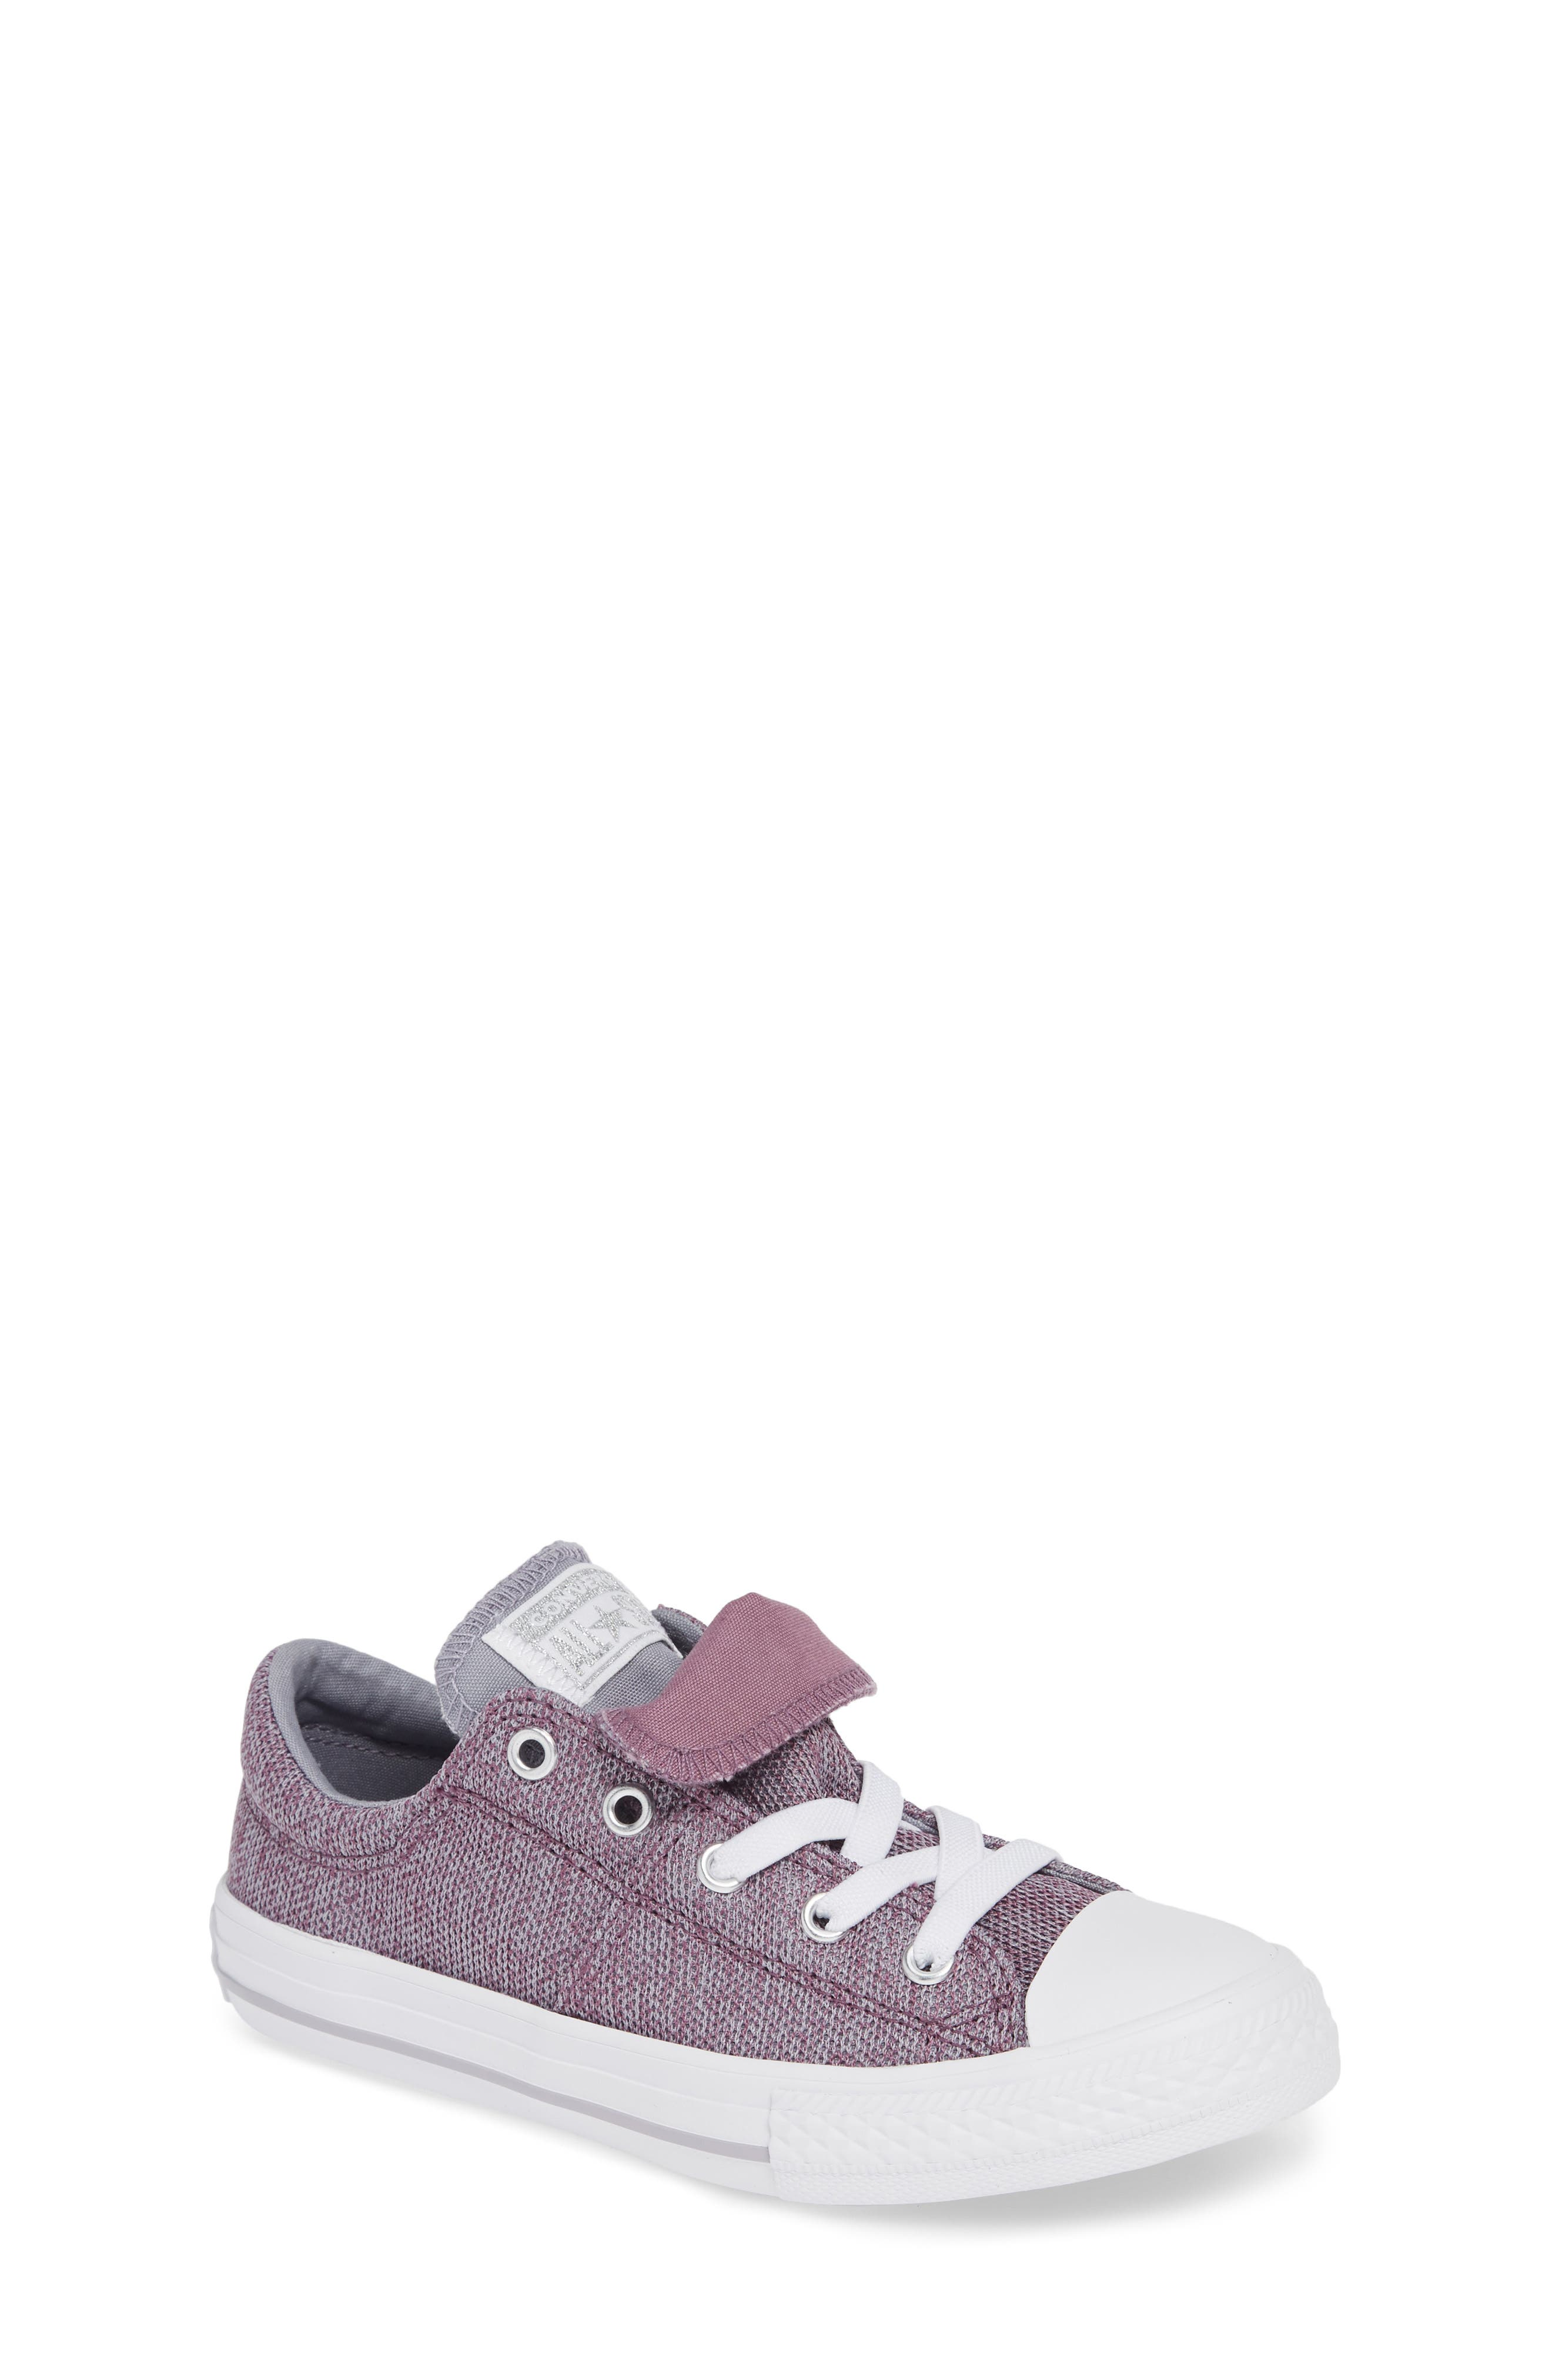 Chuck Taylor<sup>®</sup> All Star<sup>®</sup> Maddie Double Tongue Sneaker,                         Main,                         color, VIOLET DUST